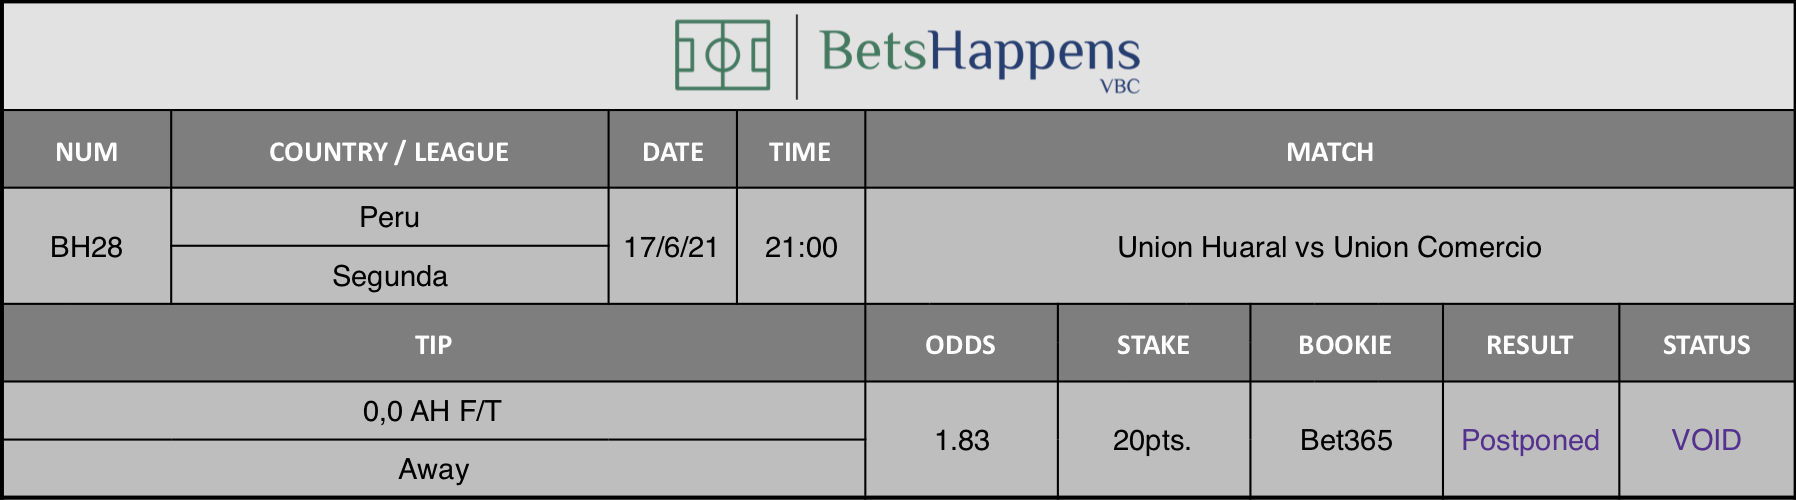 Results of our tip for the Union Huaral vs Union Comercio Match 0,0 AH F/T Away is recommended.